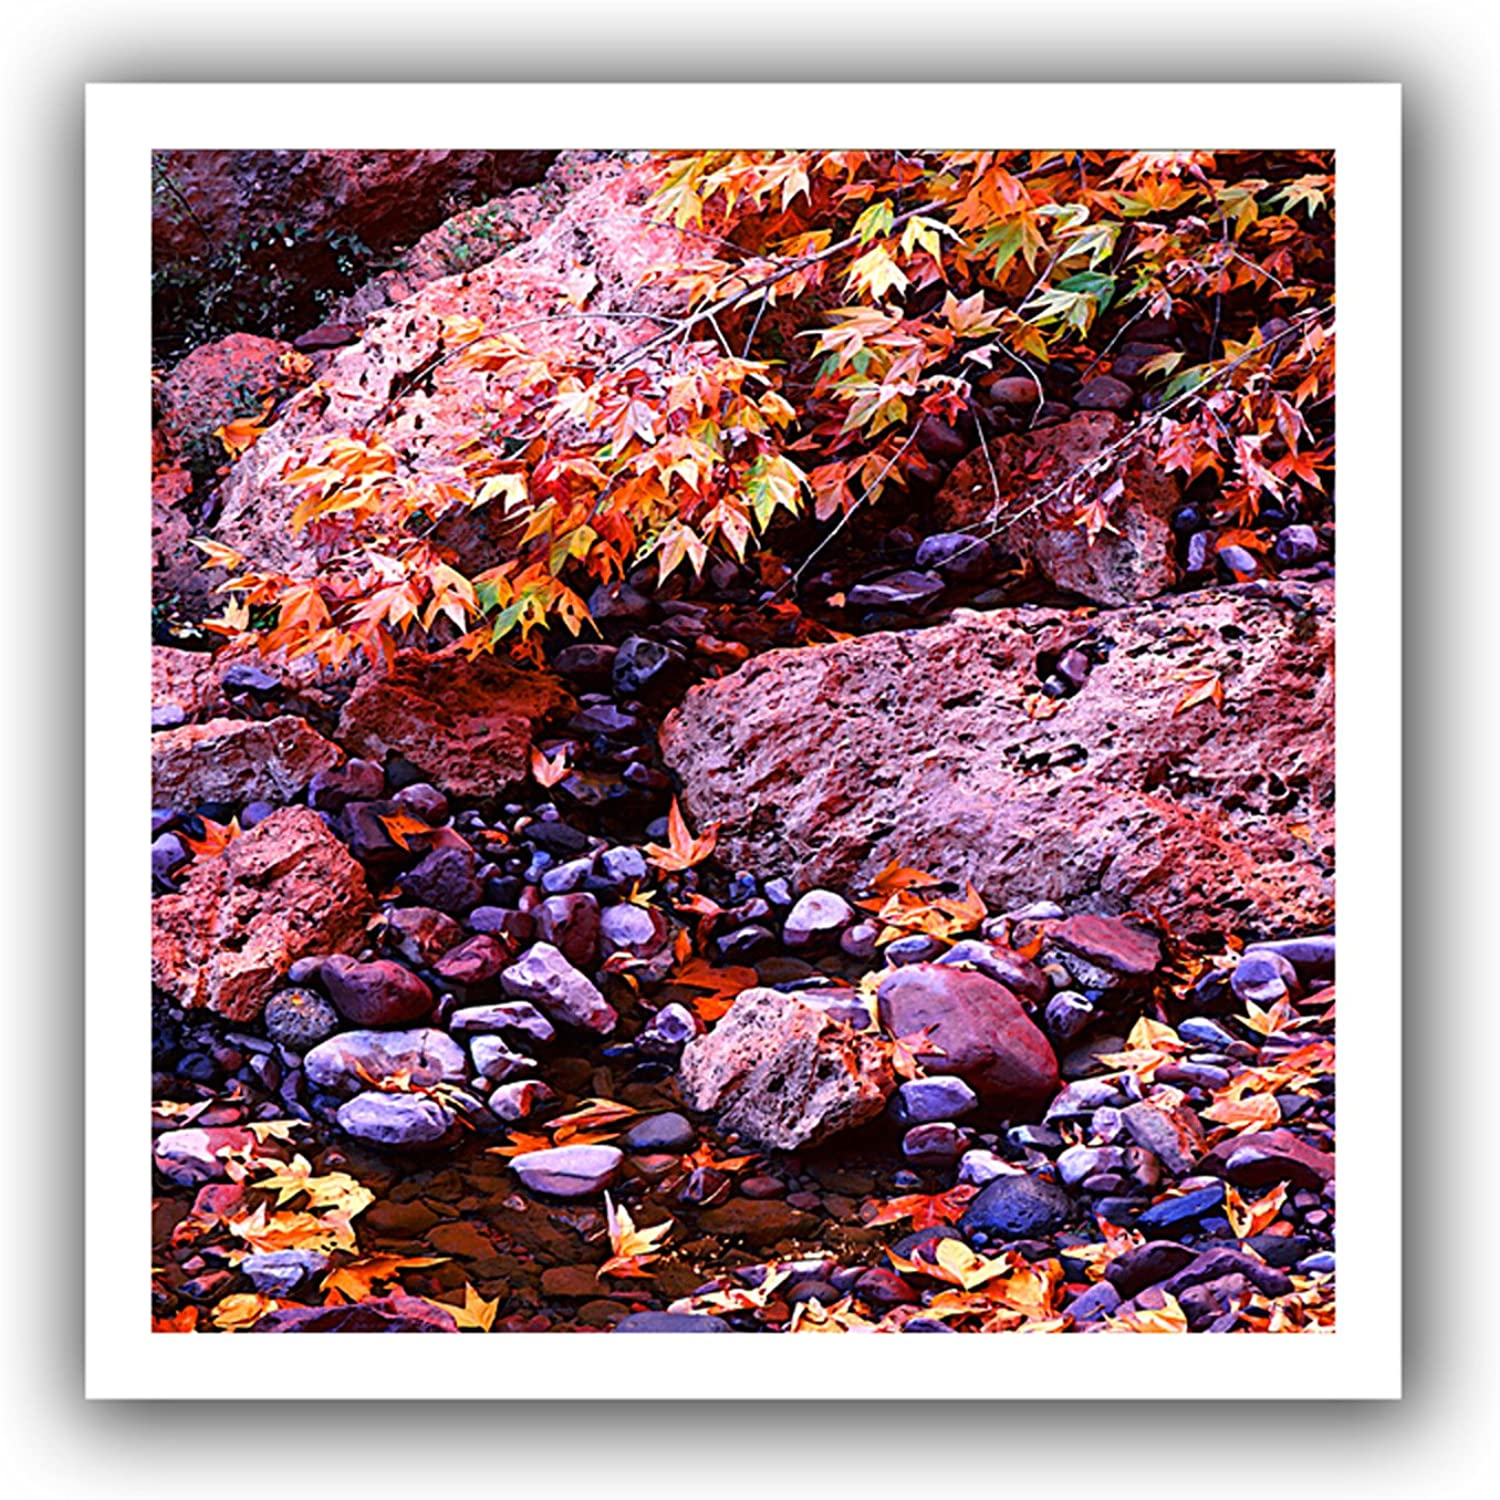 ArtWall Dean Uhlinger 'Pine Creek' Flat Unwrapped Canvas Artwork, 18 by 18Inch, Holds 14 by 14Inch Image